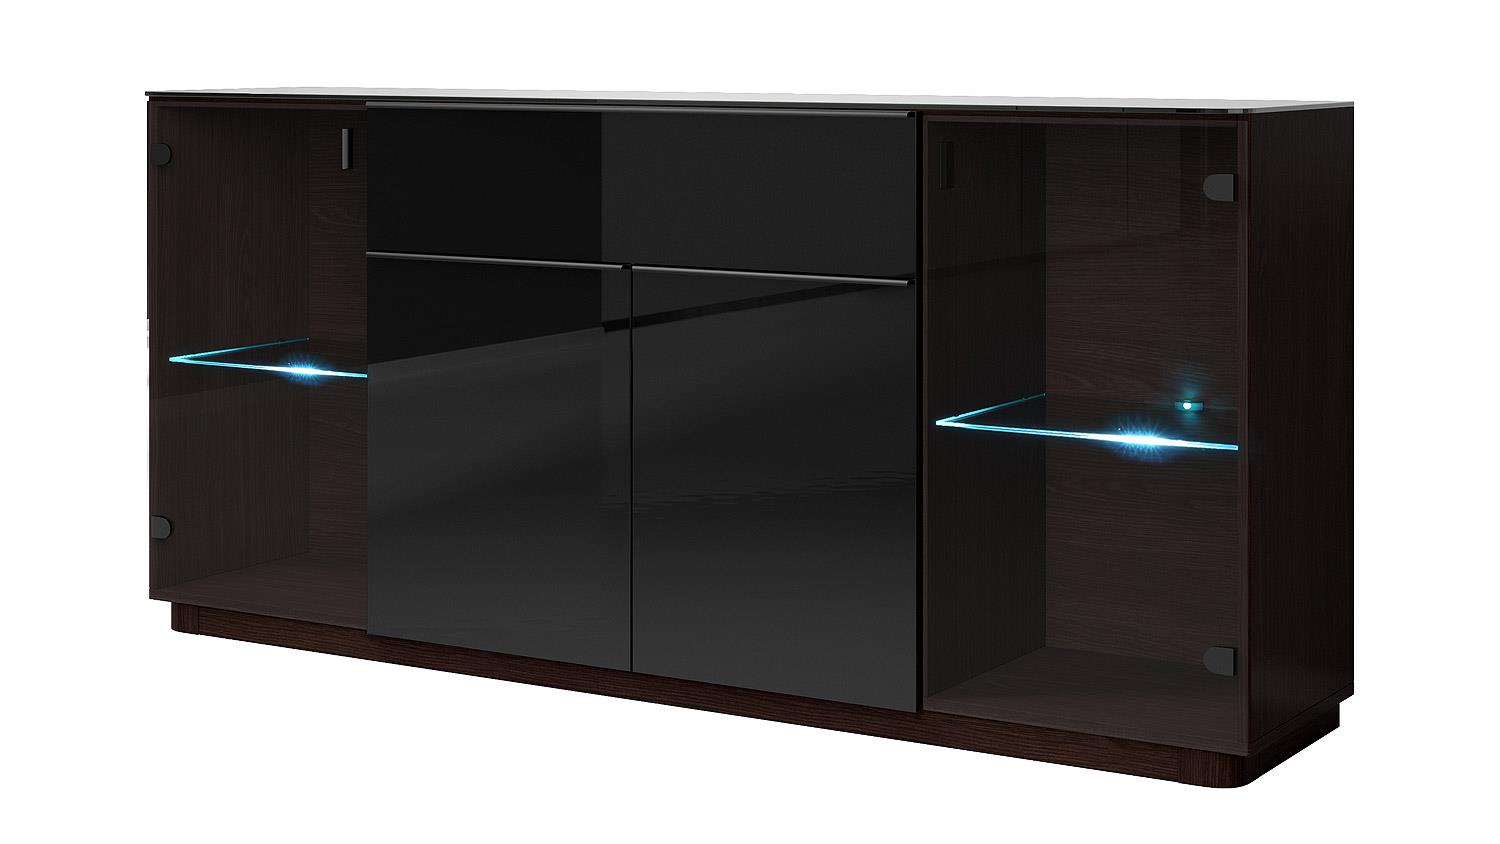 sideboard togos wm glas schwarz und wenge inkl led. Black Bedroom Furniture Sets. Home Design Ideas